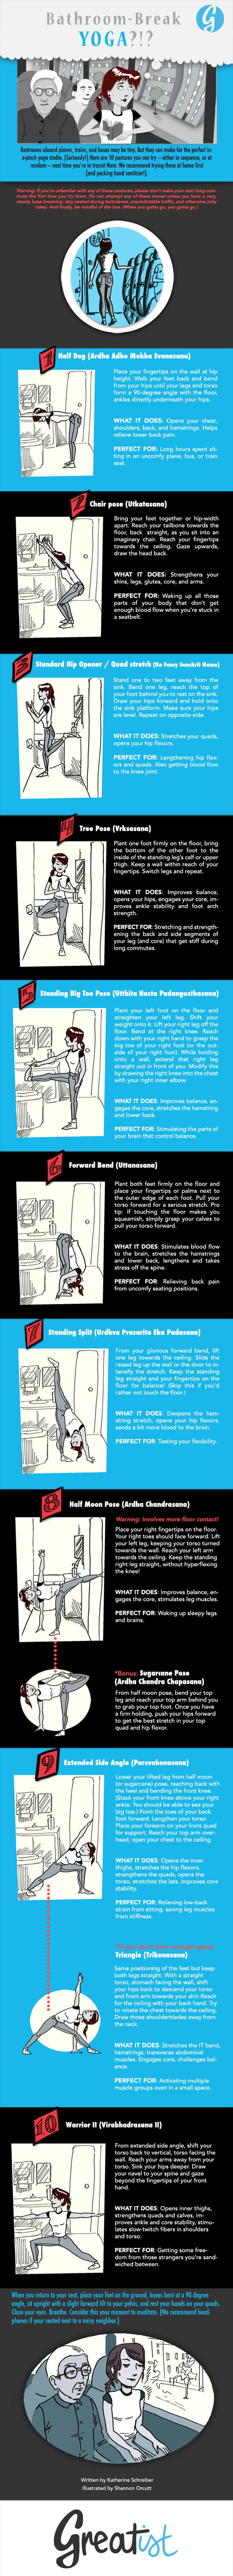 Bathroom Yoga Poses the 10 best yoga poses for travelers | infographic, yoga and yoga